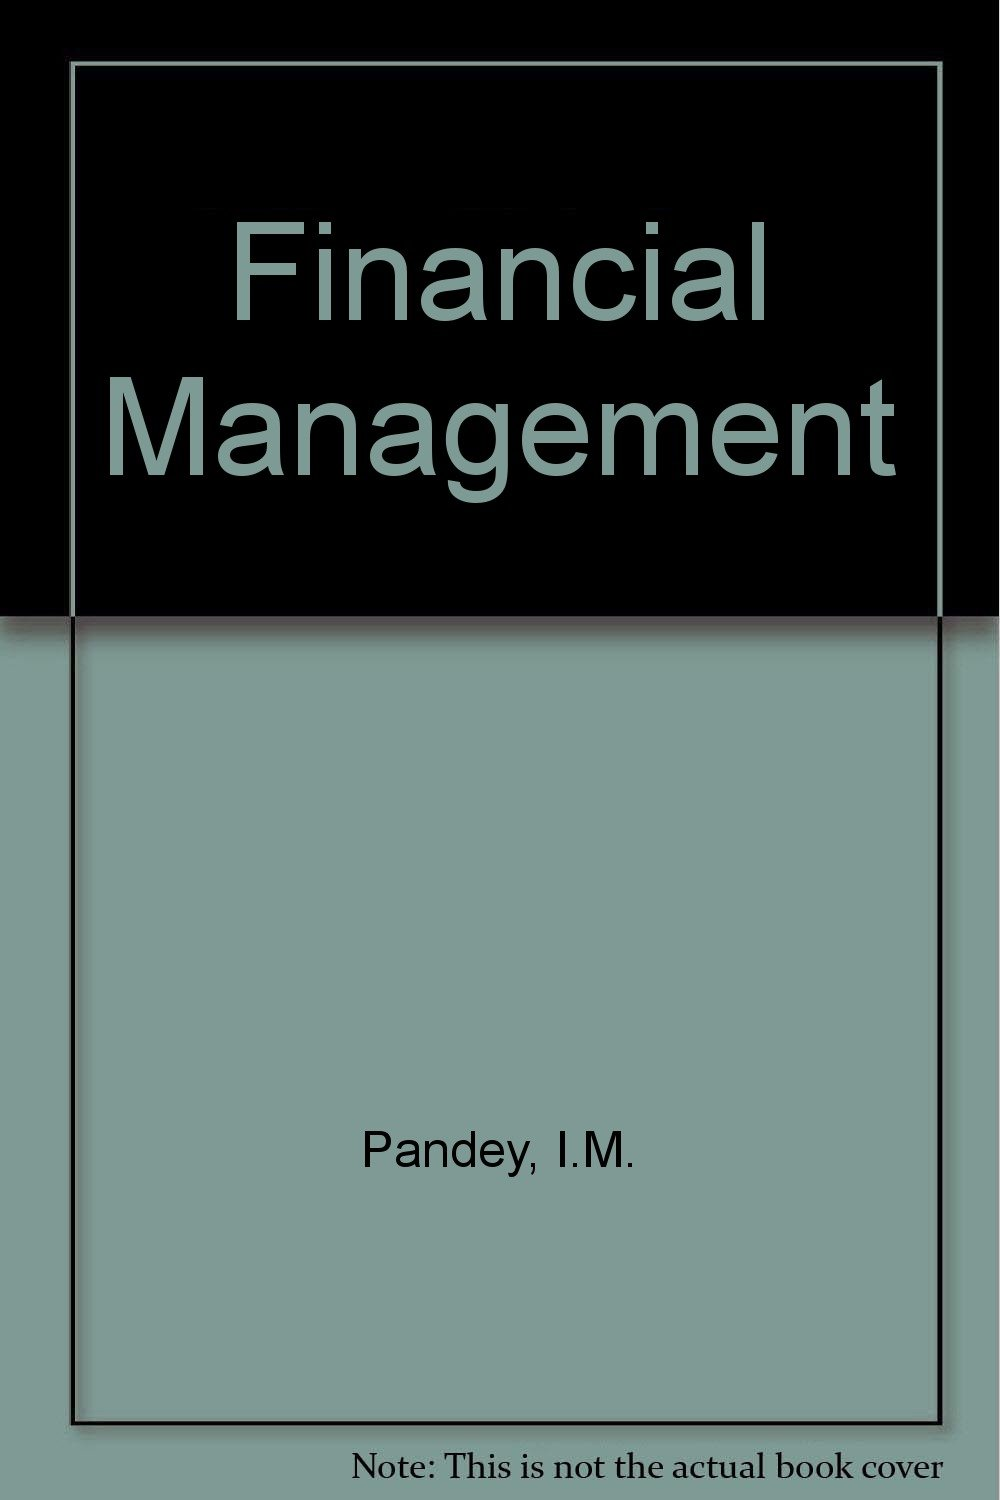 Financial management by i m pandey PDFs / eBooks